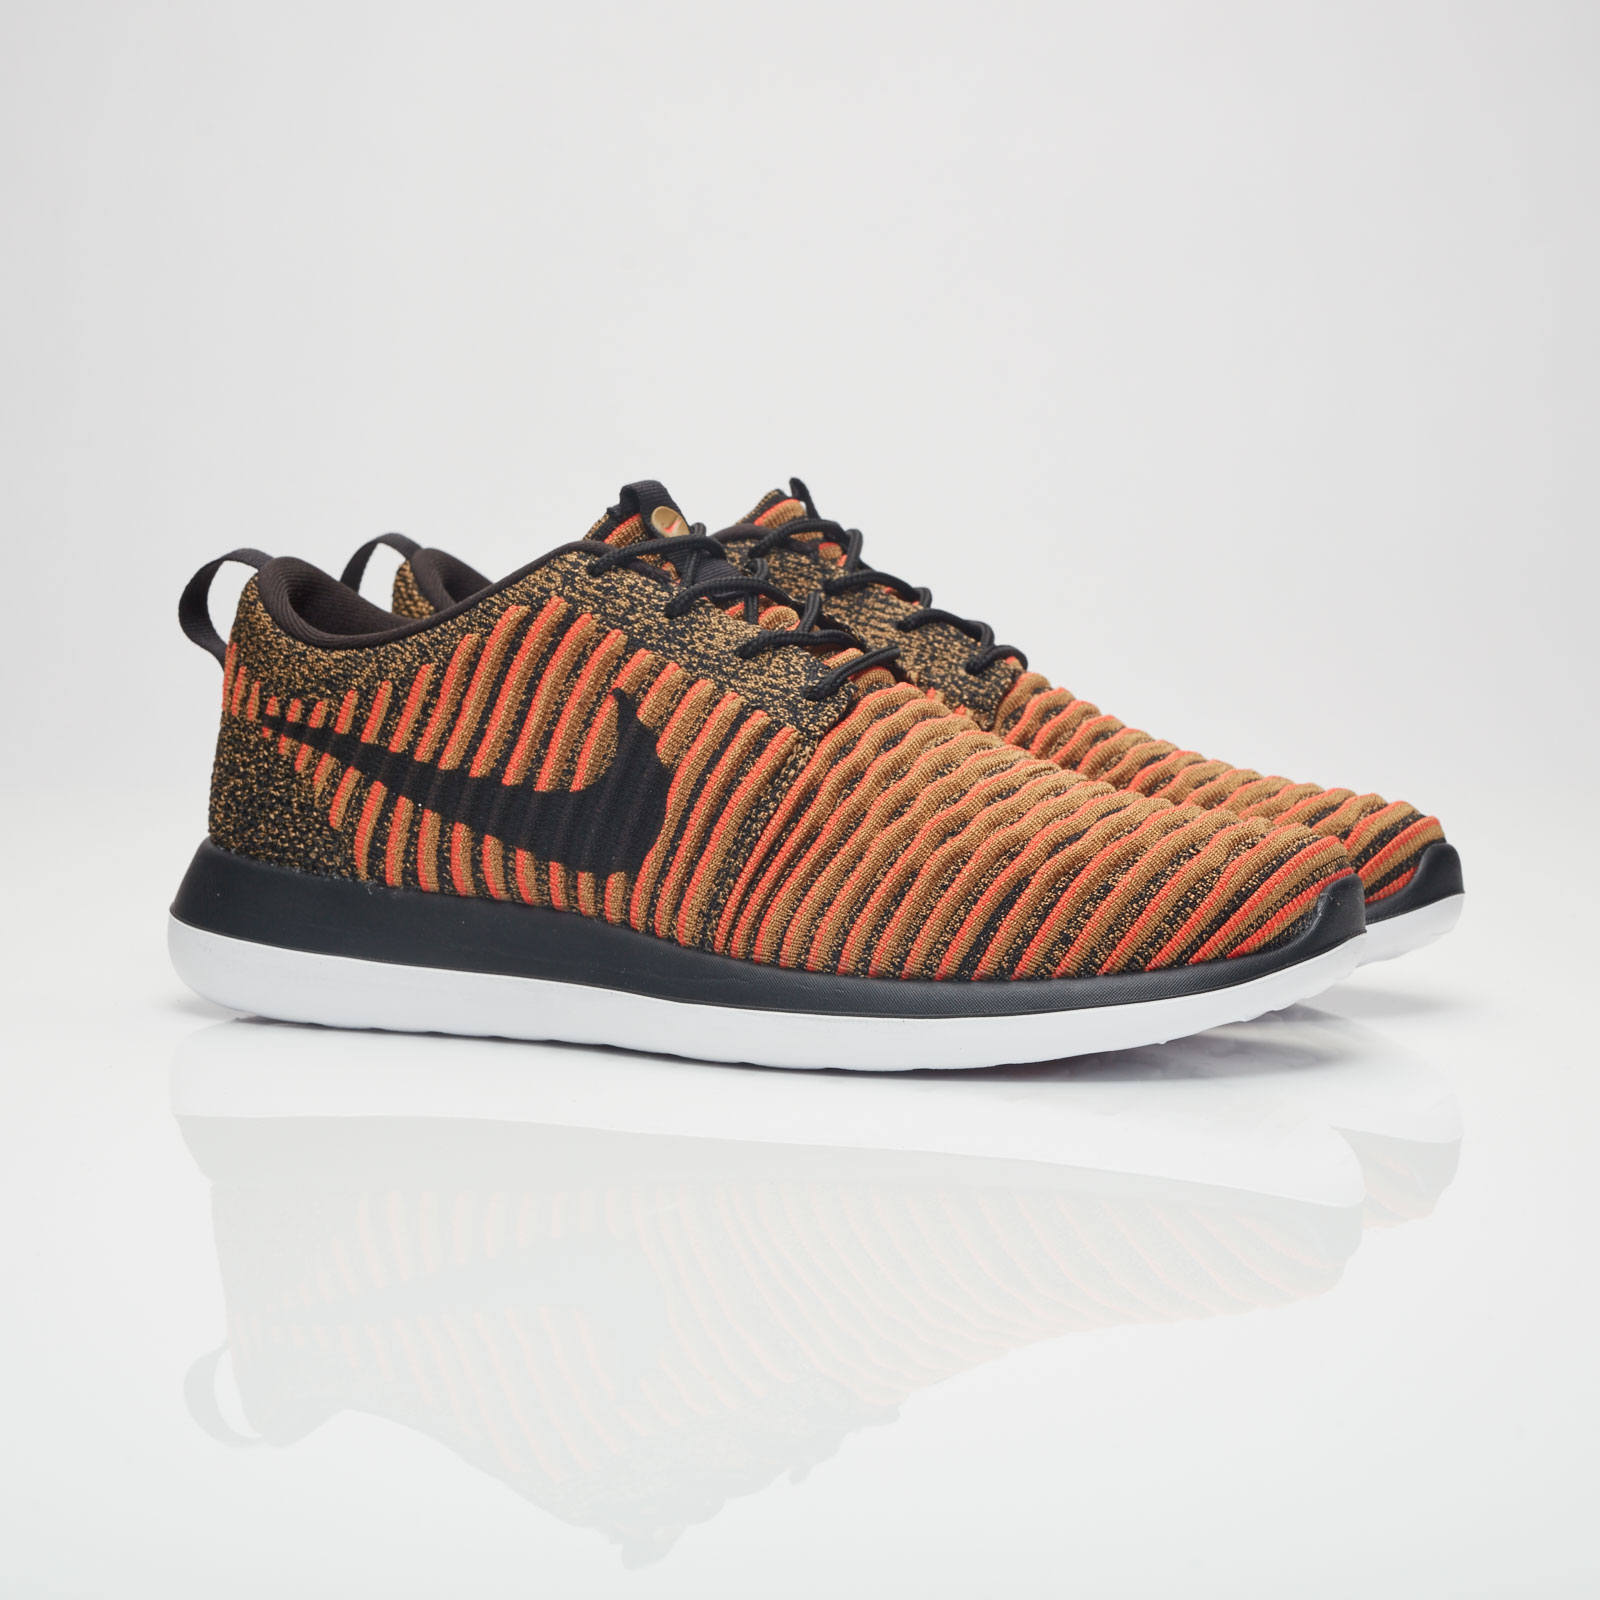 wholesale dealer 56316 20776 Nike Sportswear Roshe Two Flyknit